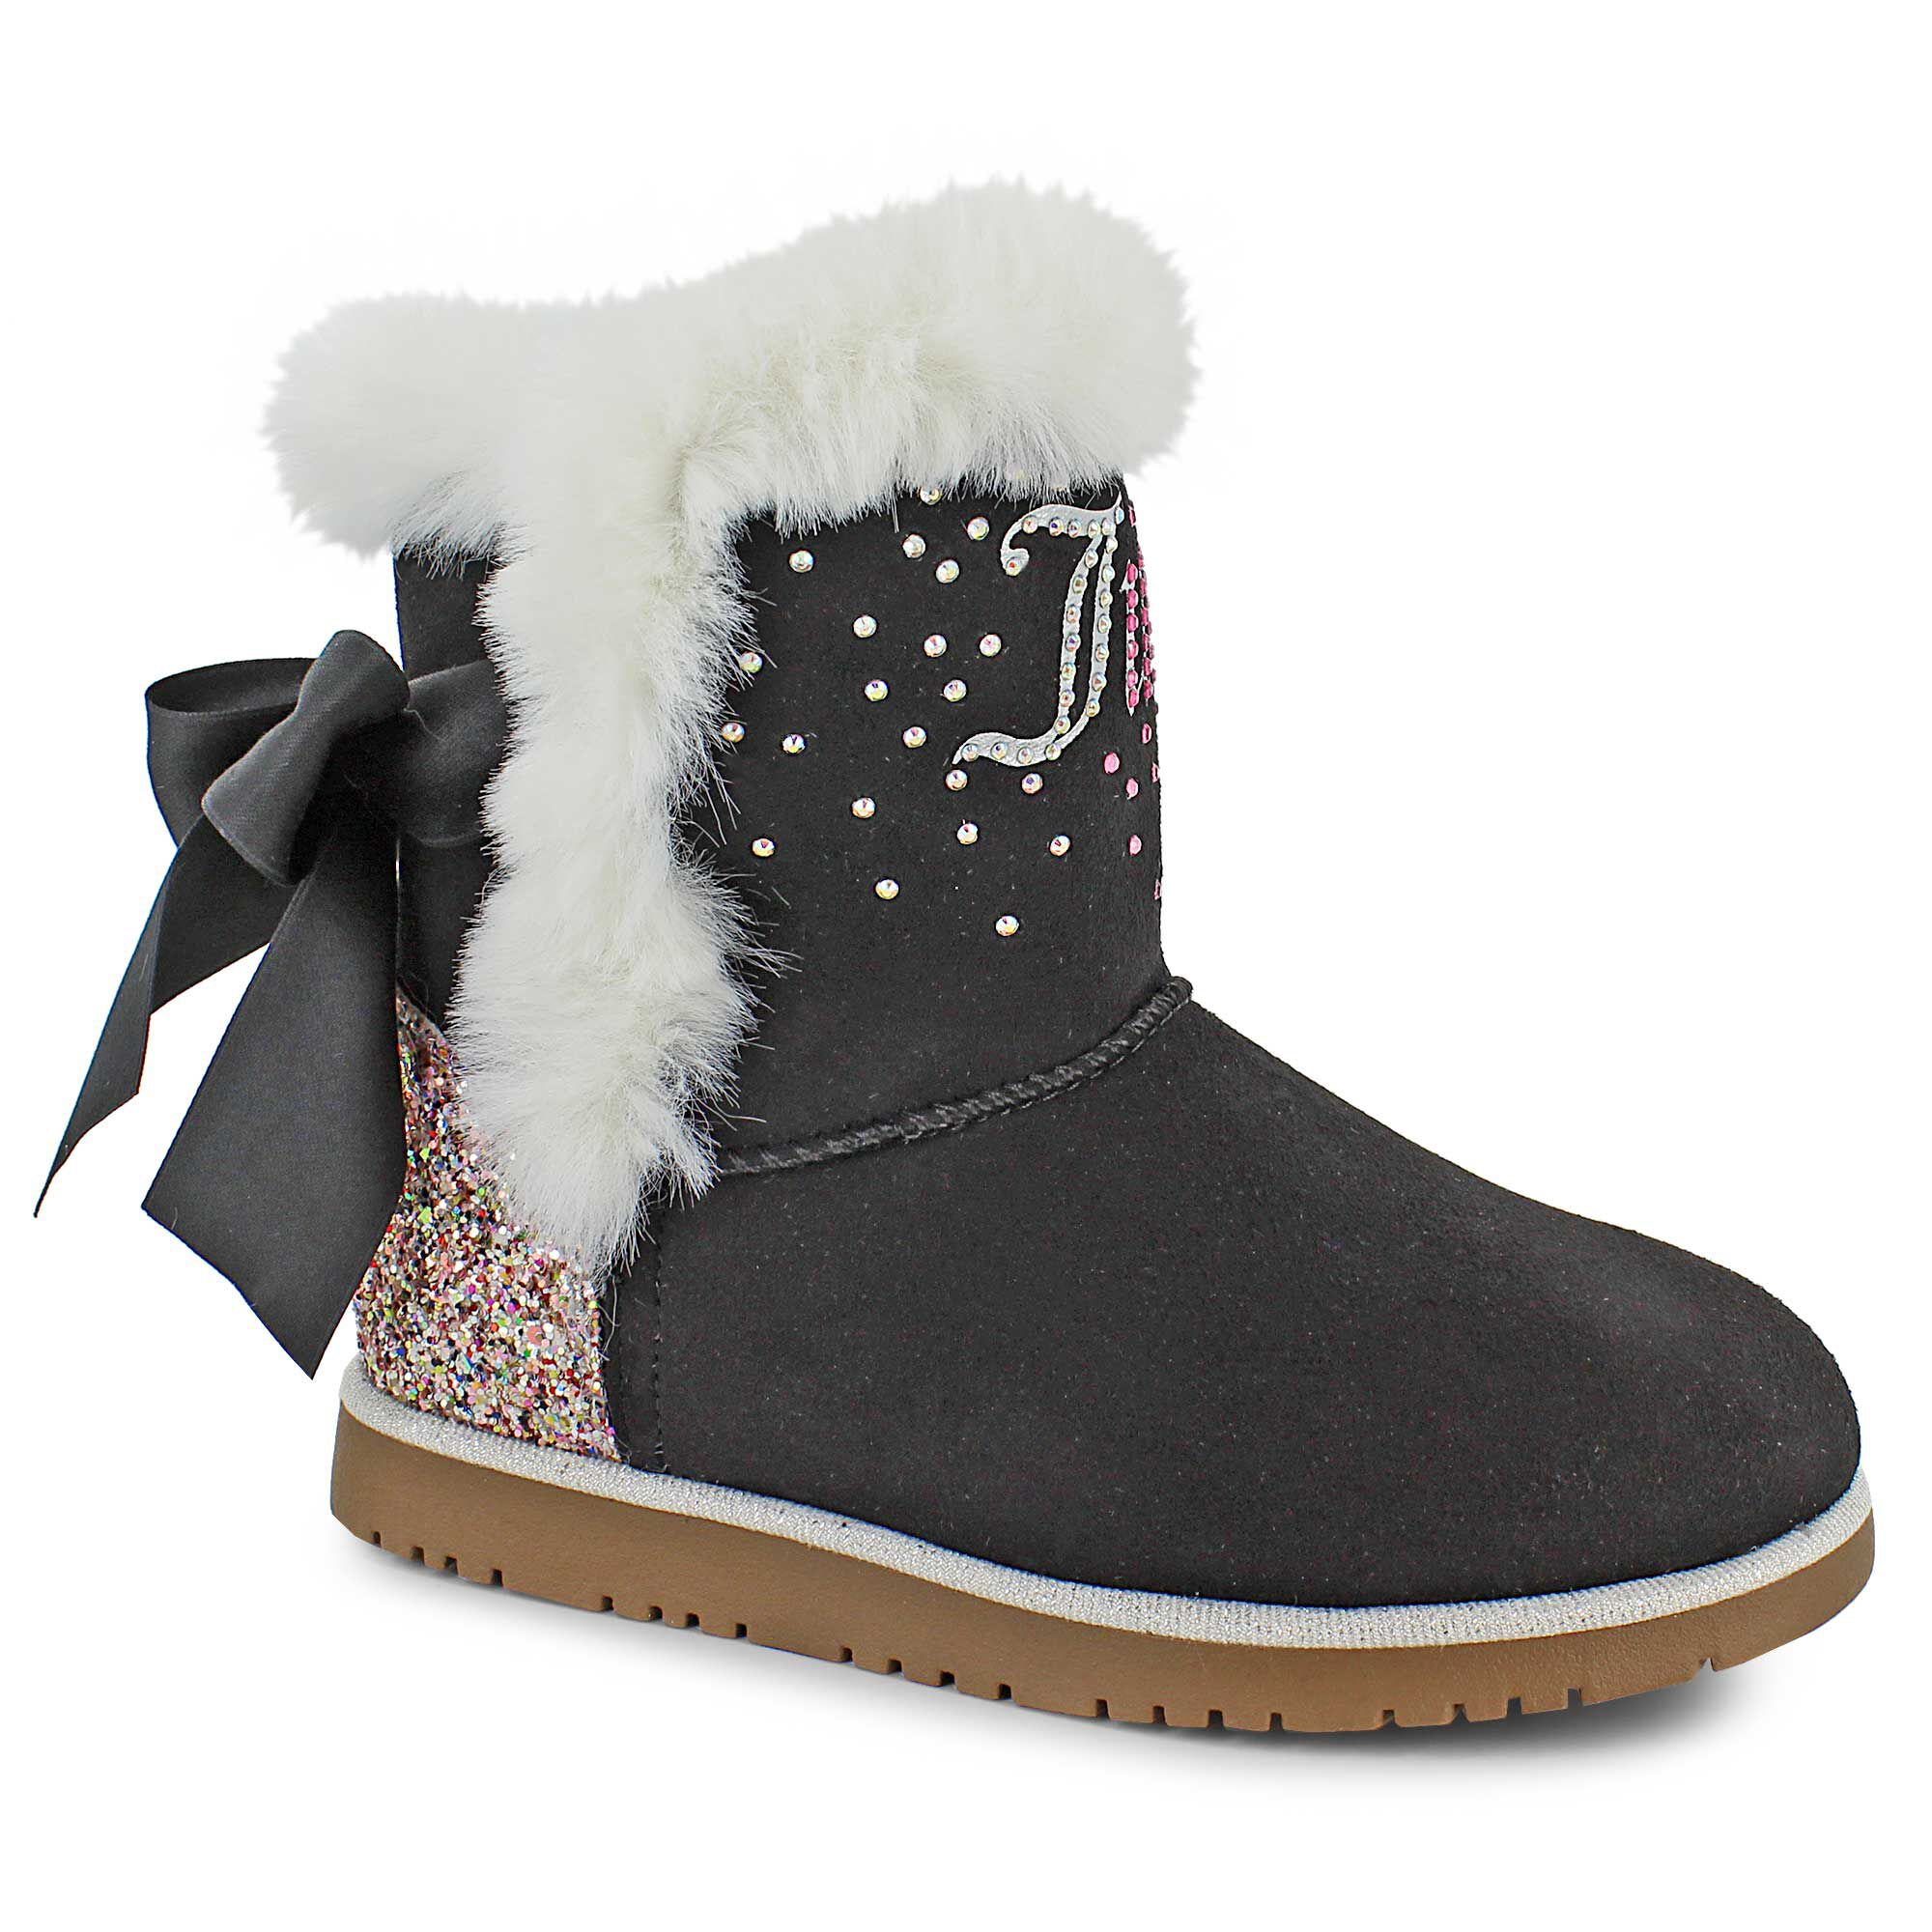 Girls' Boots | Shop Now at SHOE DEPT